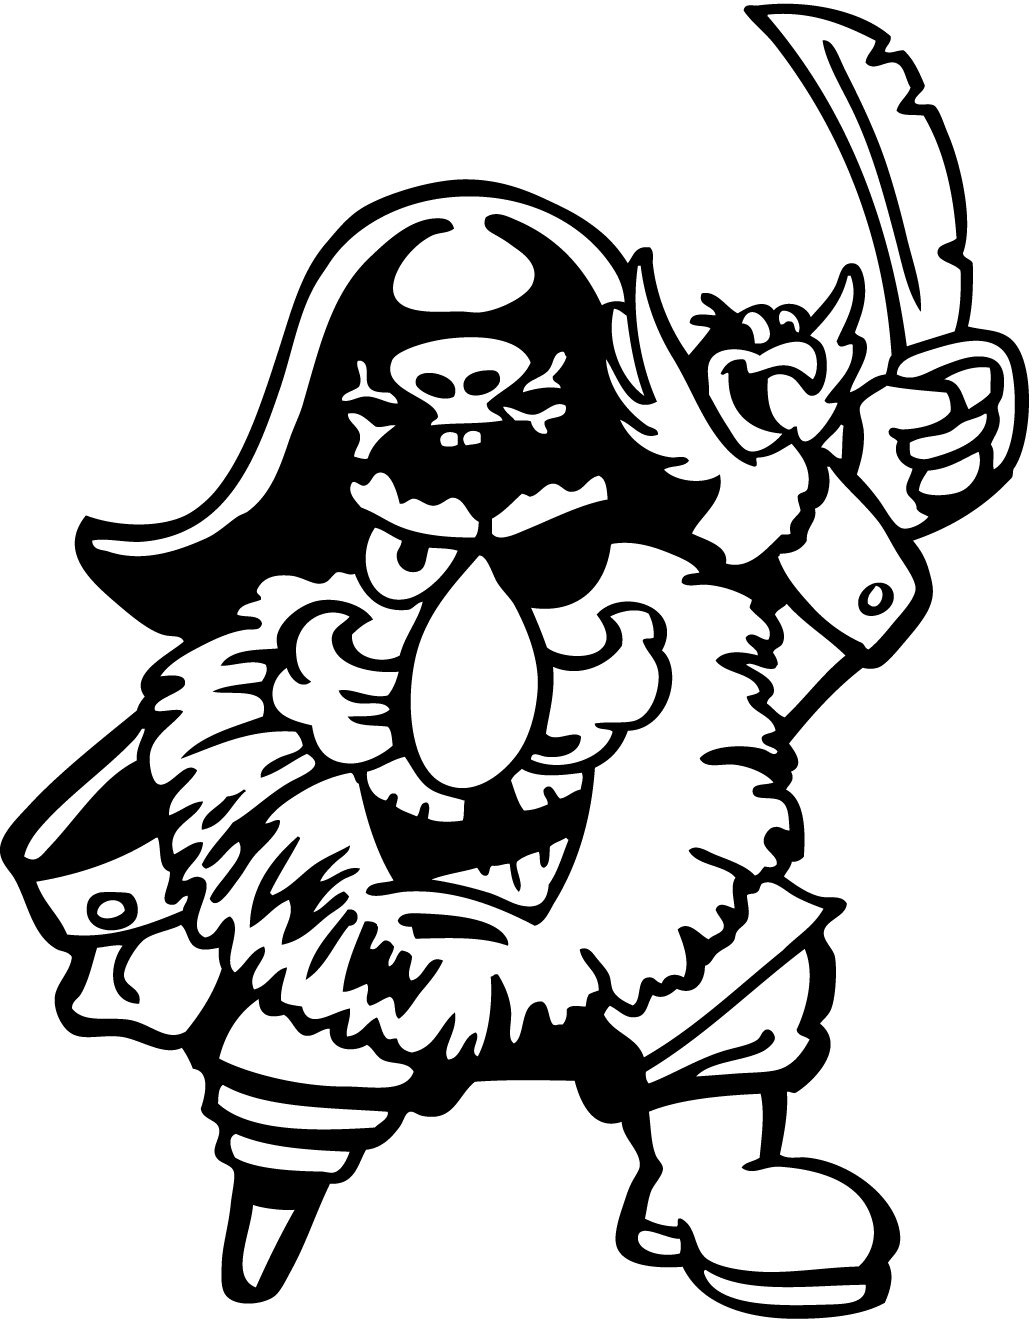 download pirate coloring pages 05pirates coloring pagesfantasy pictures - Pittsburgh Pirates Coloring Pages